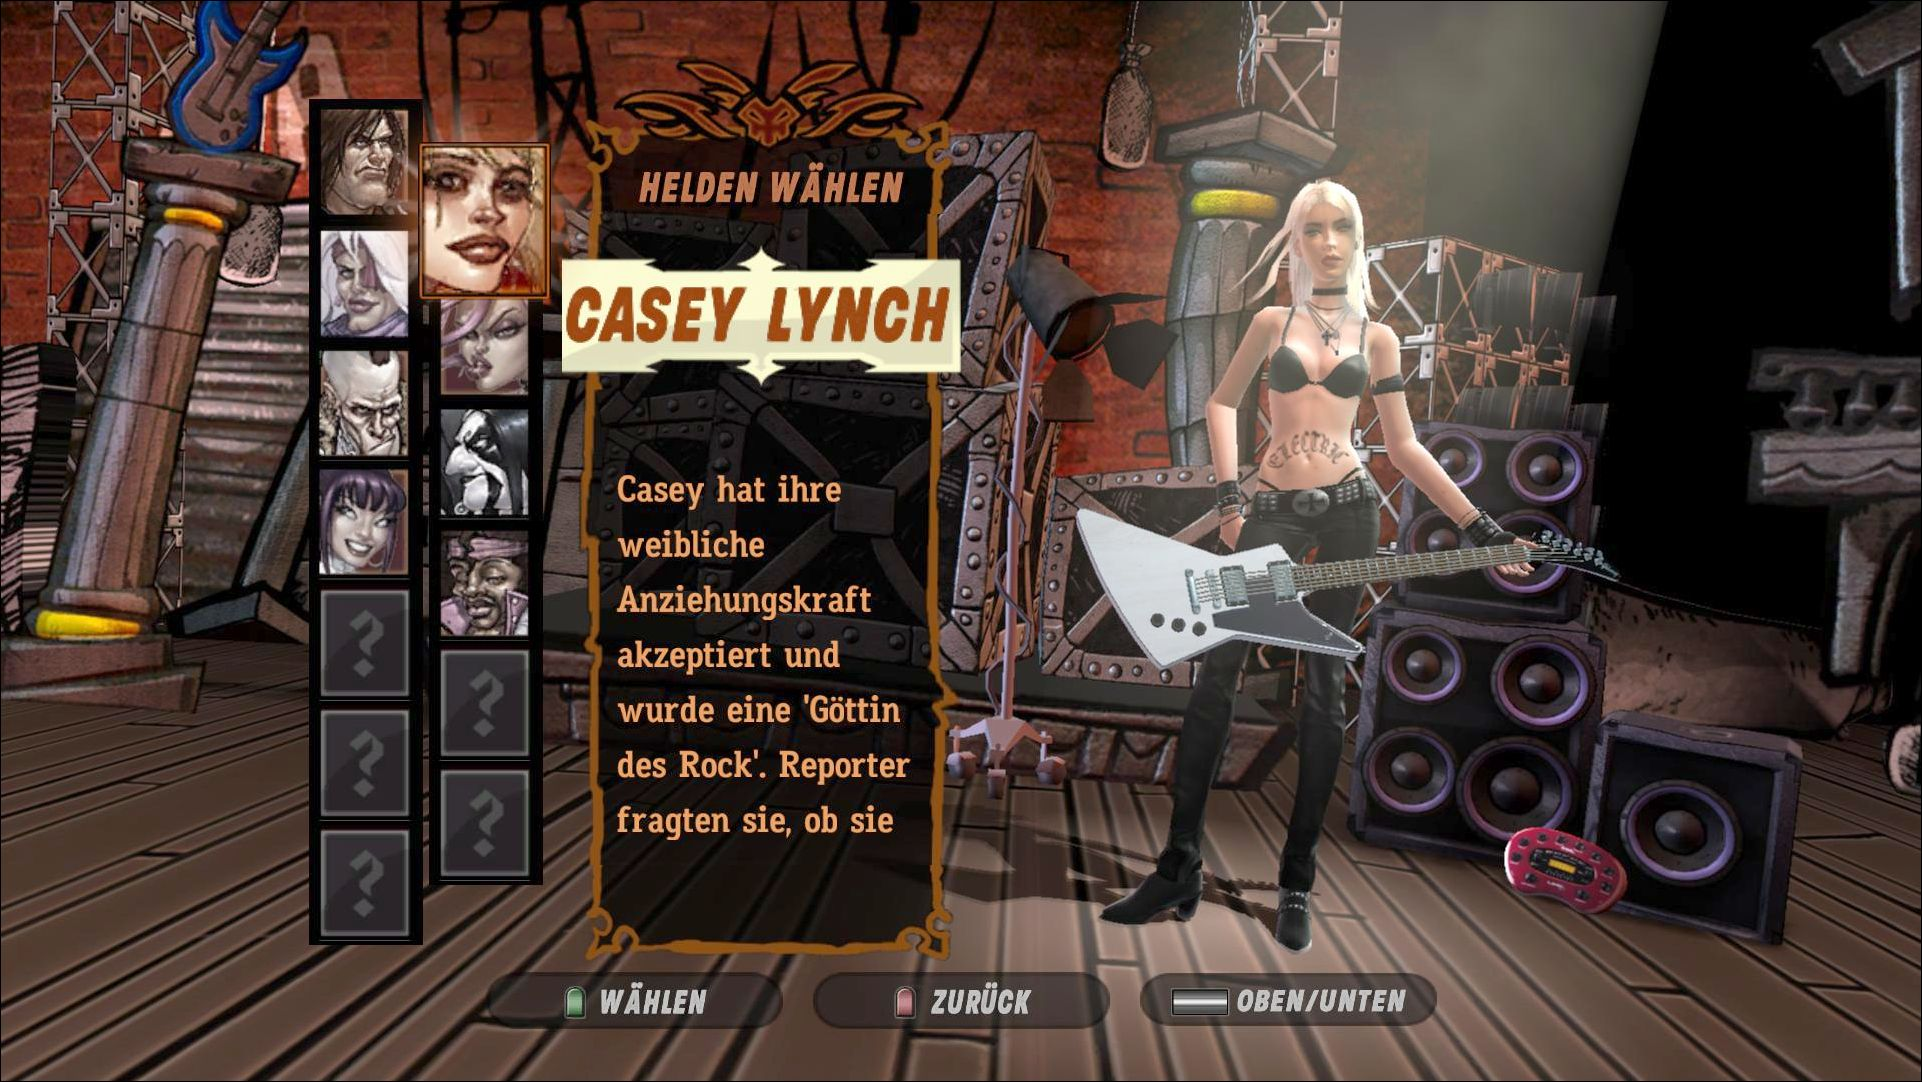 Guitar hero fetish hentai